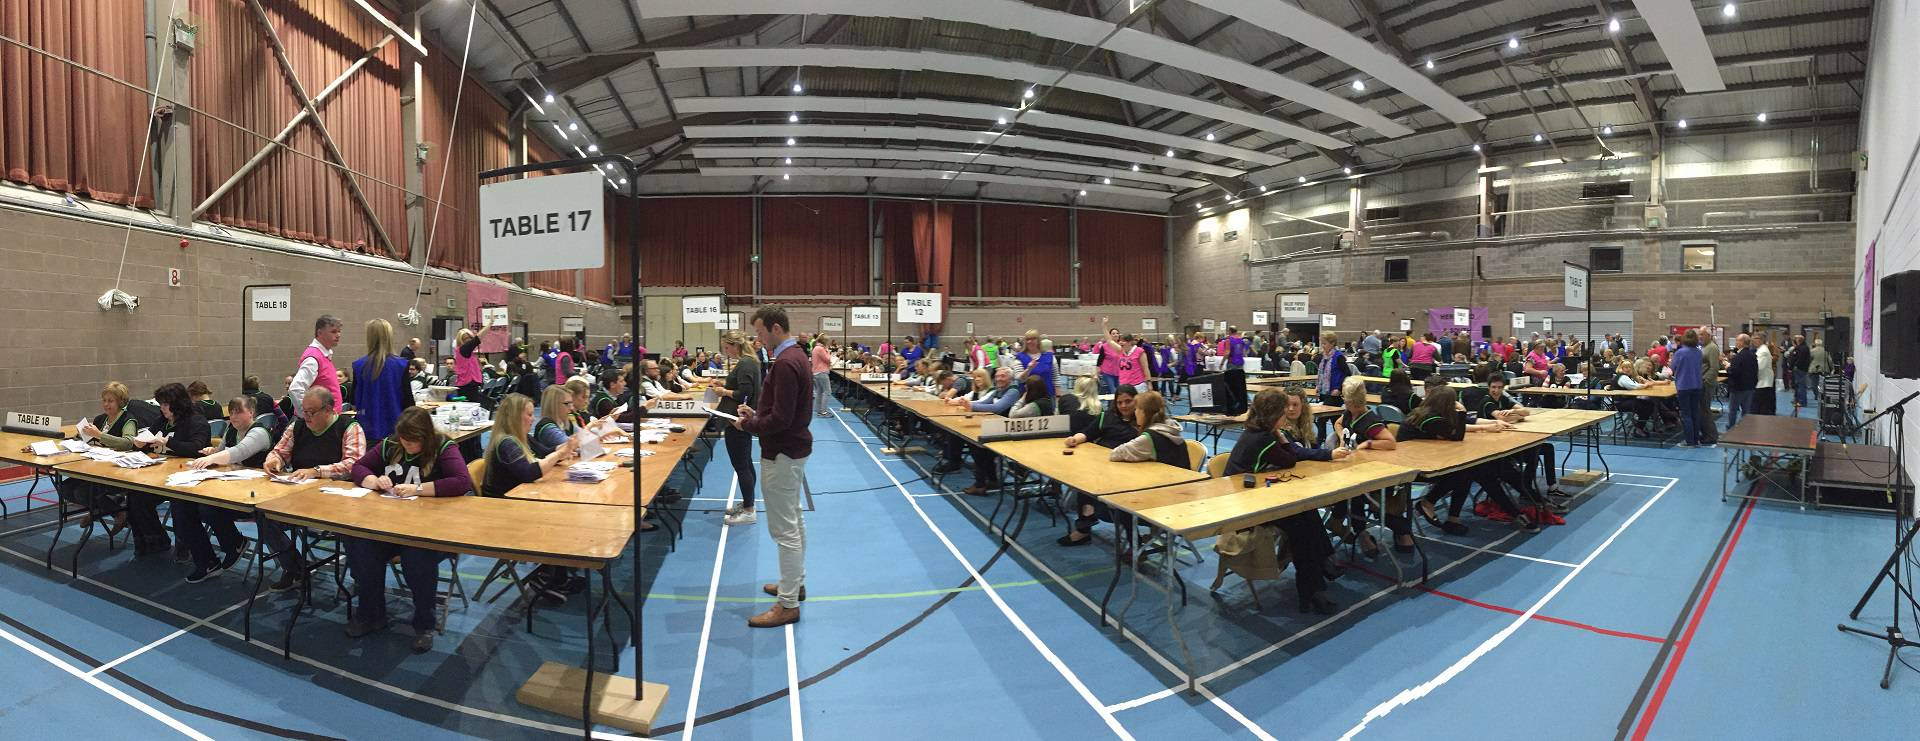 Hereford Leisure Centre during election night count